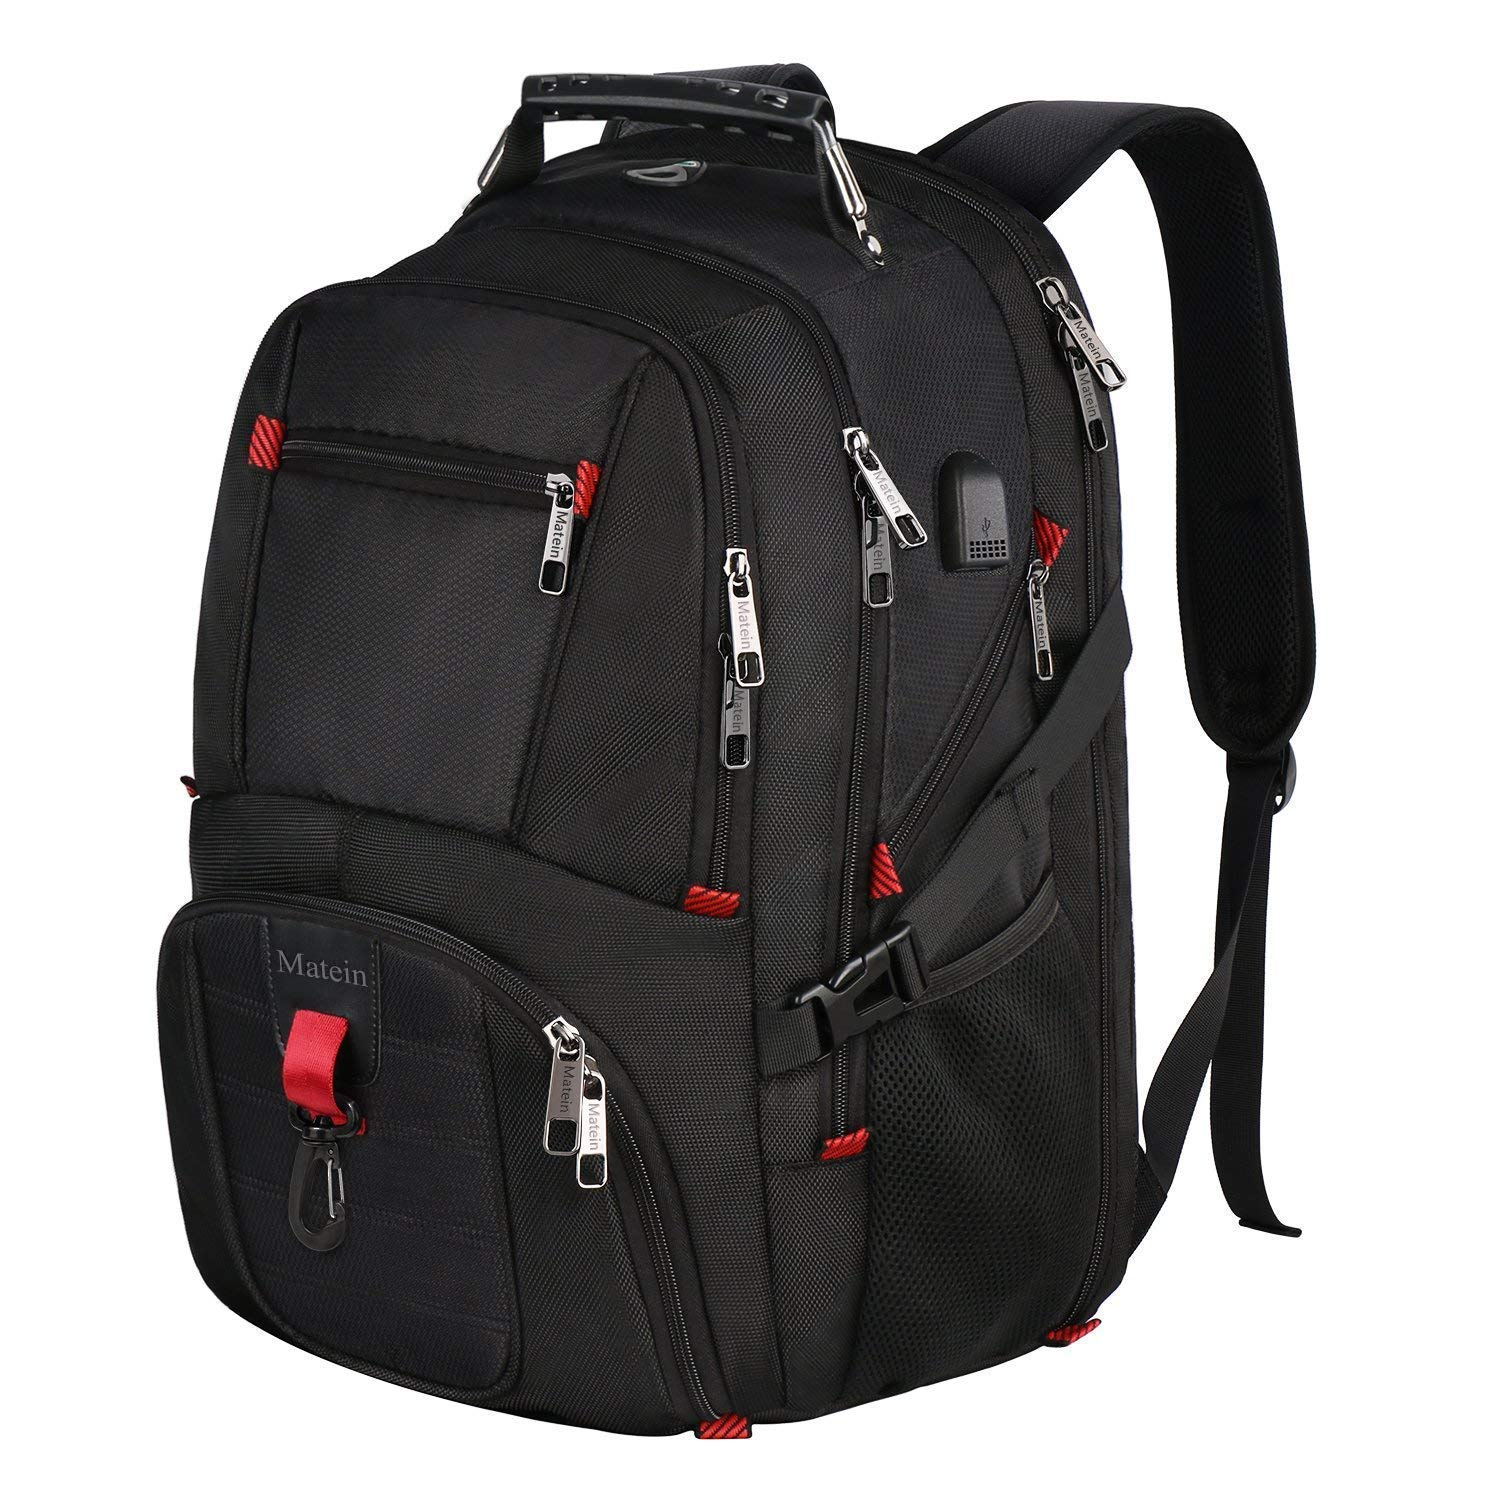 Water Resistant College School Computer Bag for Women Men Black Xnuoyo 17.3inch Travel Laptop Backpack Unisex Business Rucksack with USB Charging Port Headphone Hole